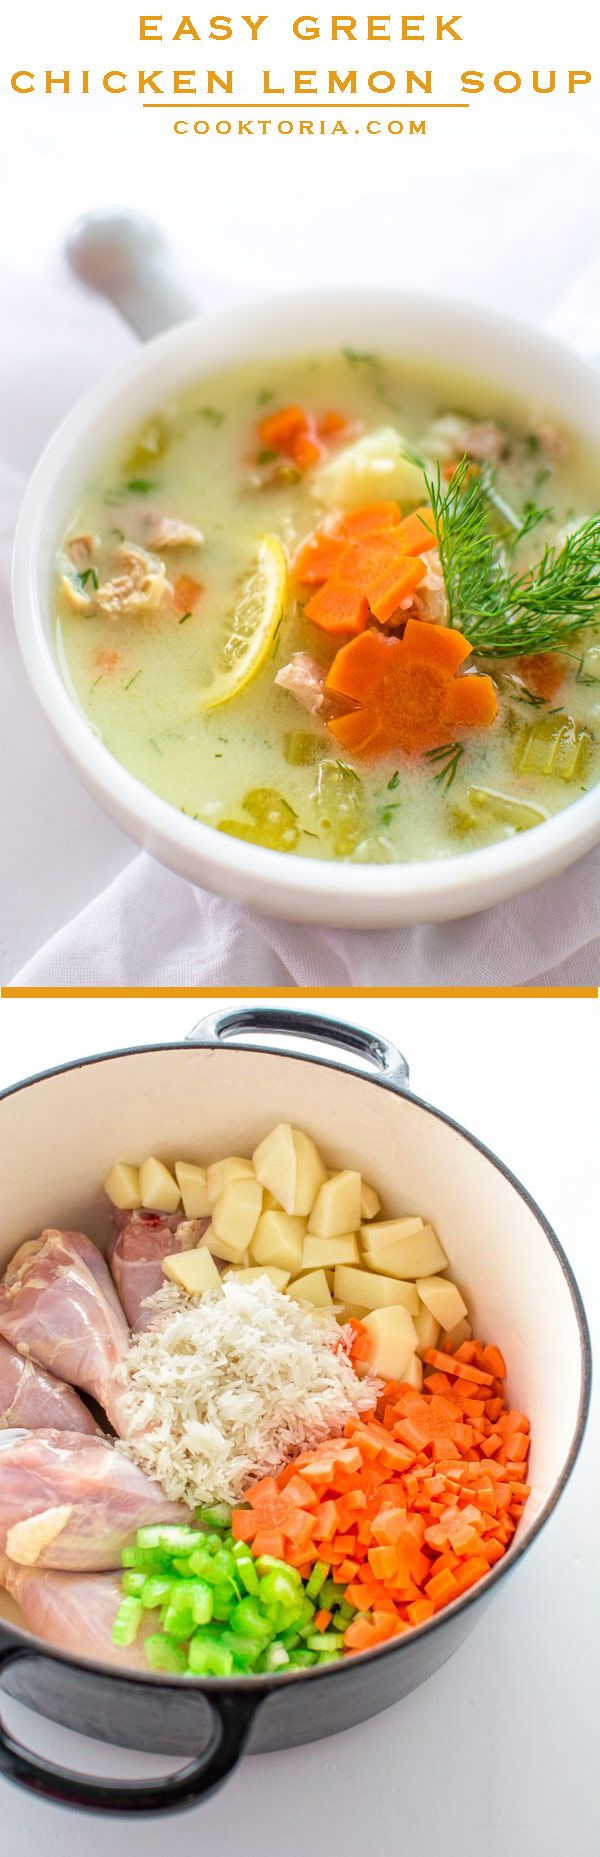 Easy Greek Chicken Lemon Soup. This brightly flavored chicken and rice soup will become your favorite in no time! ❤ COOKTORIA.COM